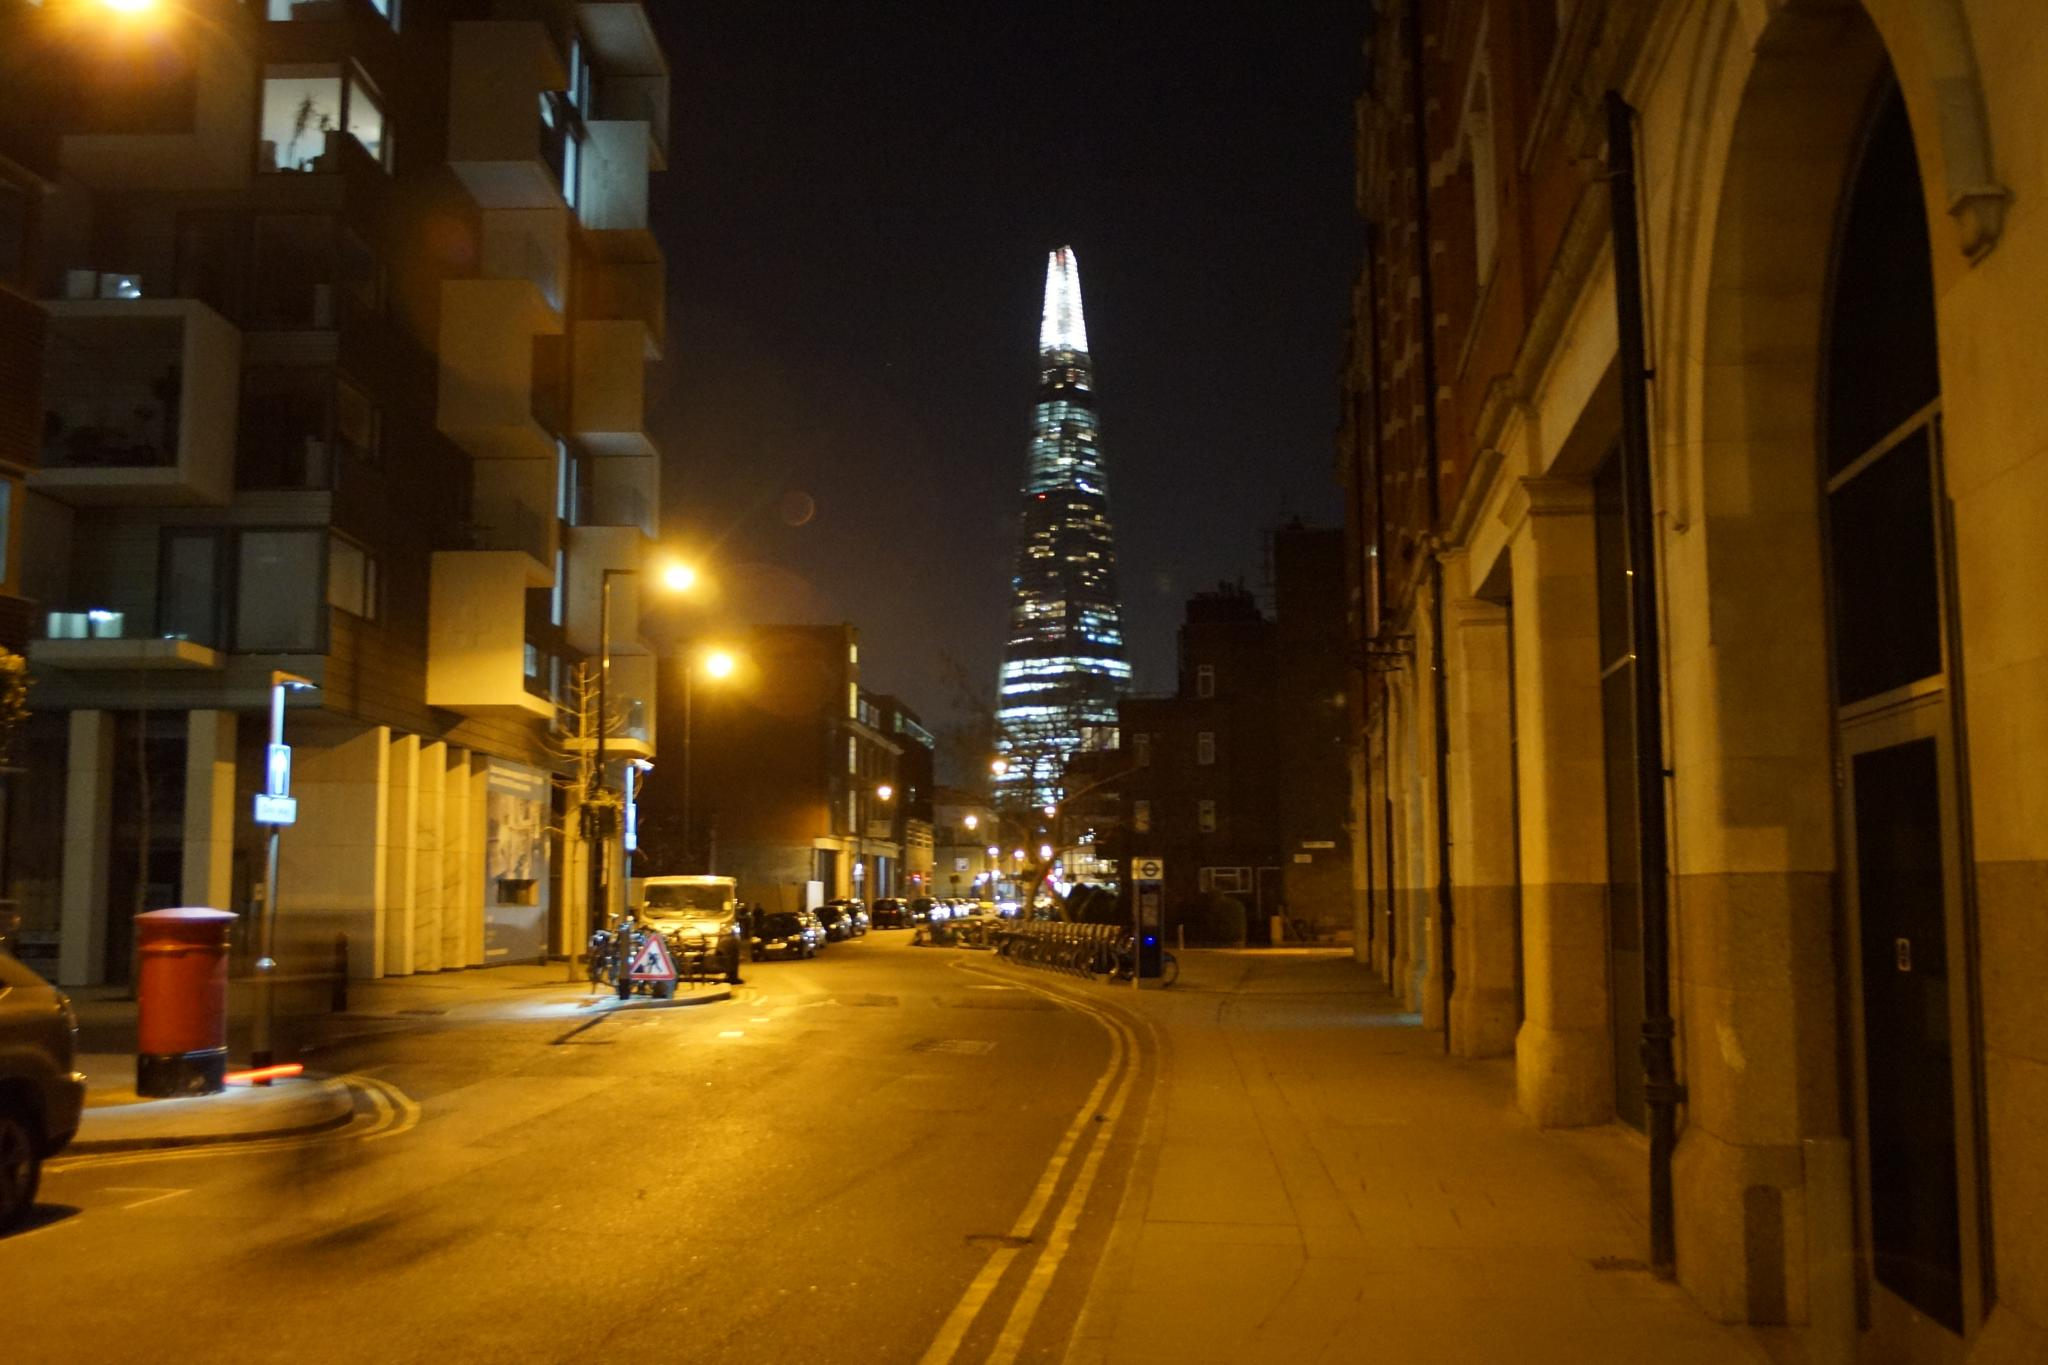 A street look at The Shard by night by erol.antz